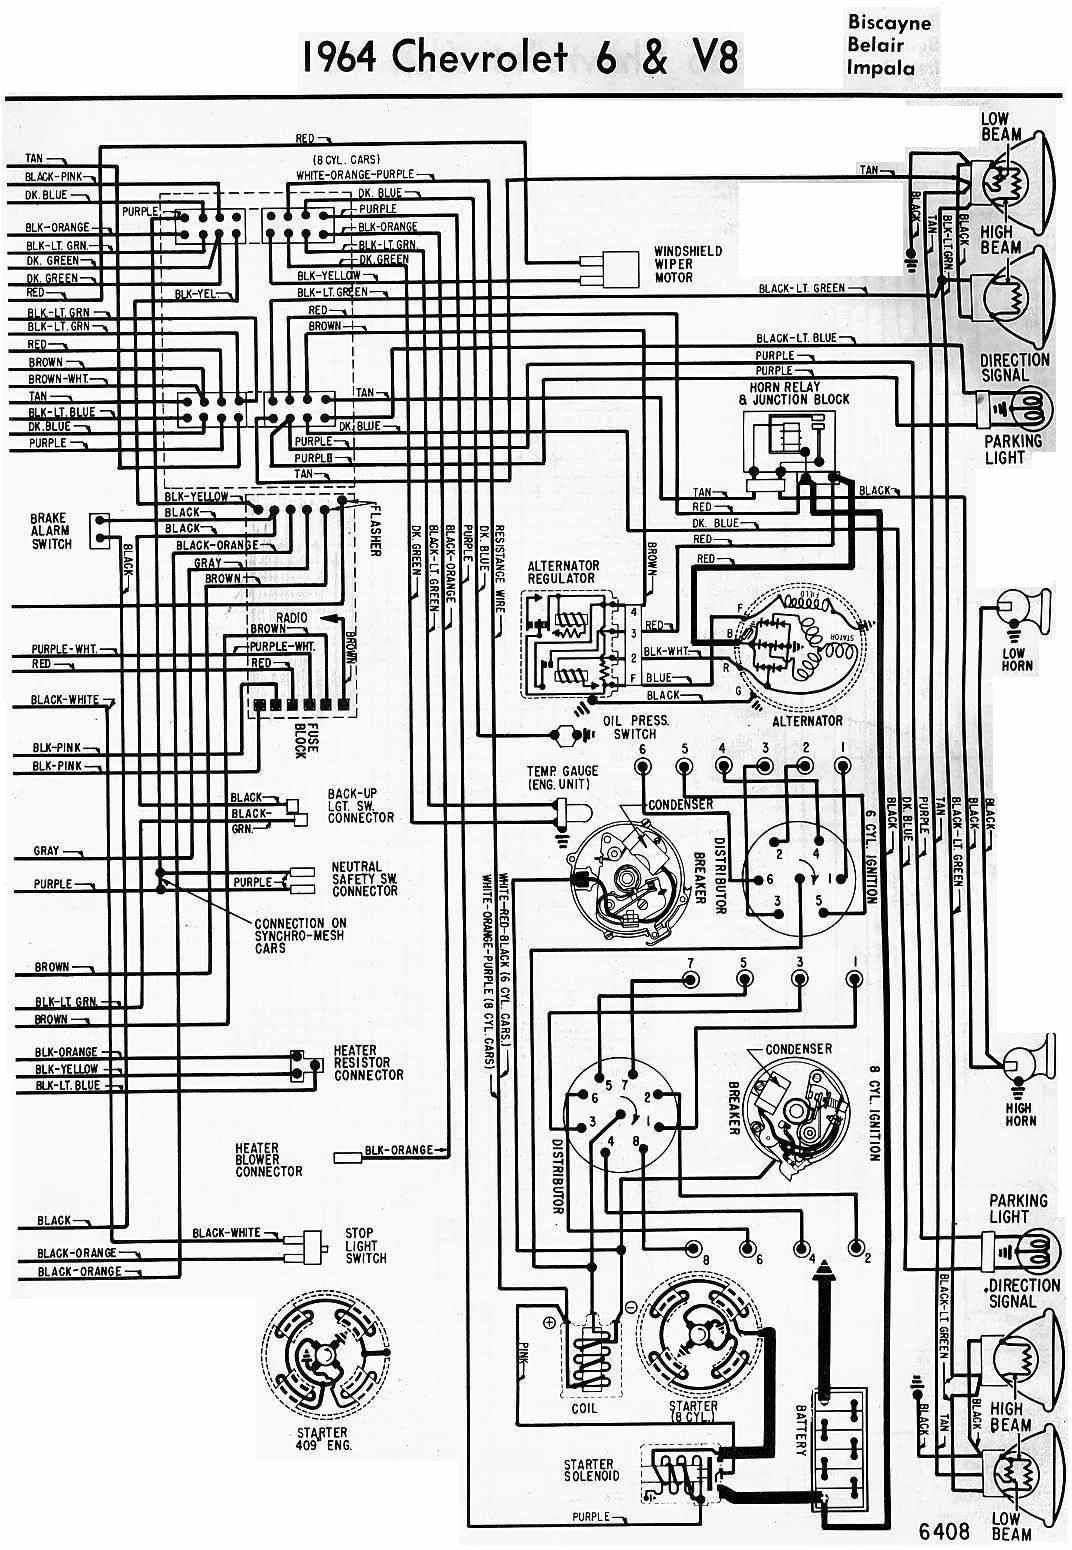 gm fuse box diagram 1964 impala wiring diagram paper 1964 chevy c10 fuse box diagram [ 1072 x 1550 Pixel ]